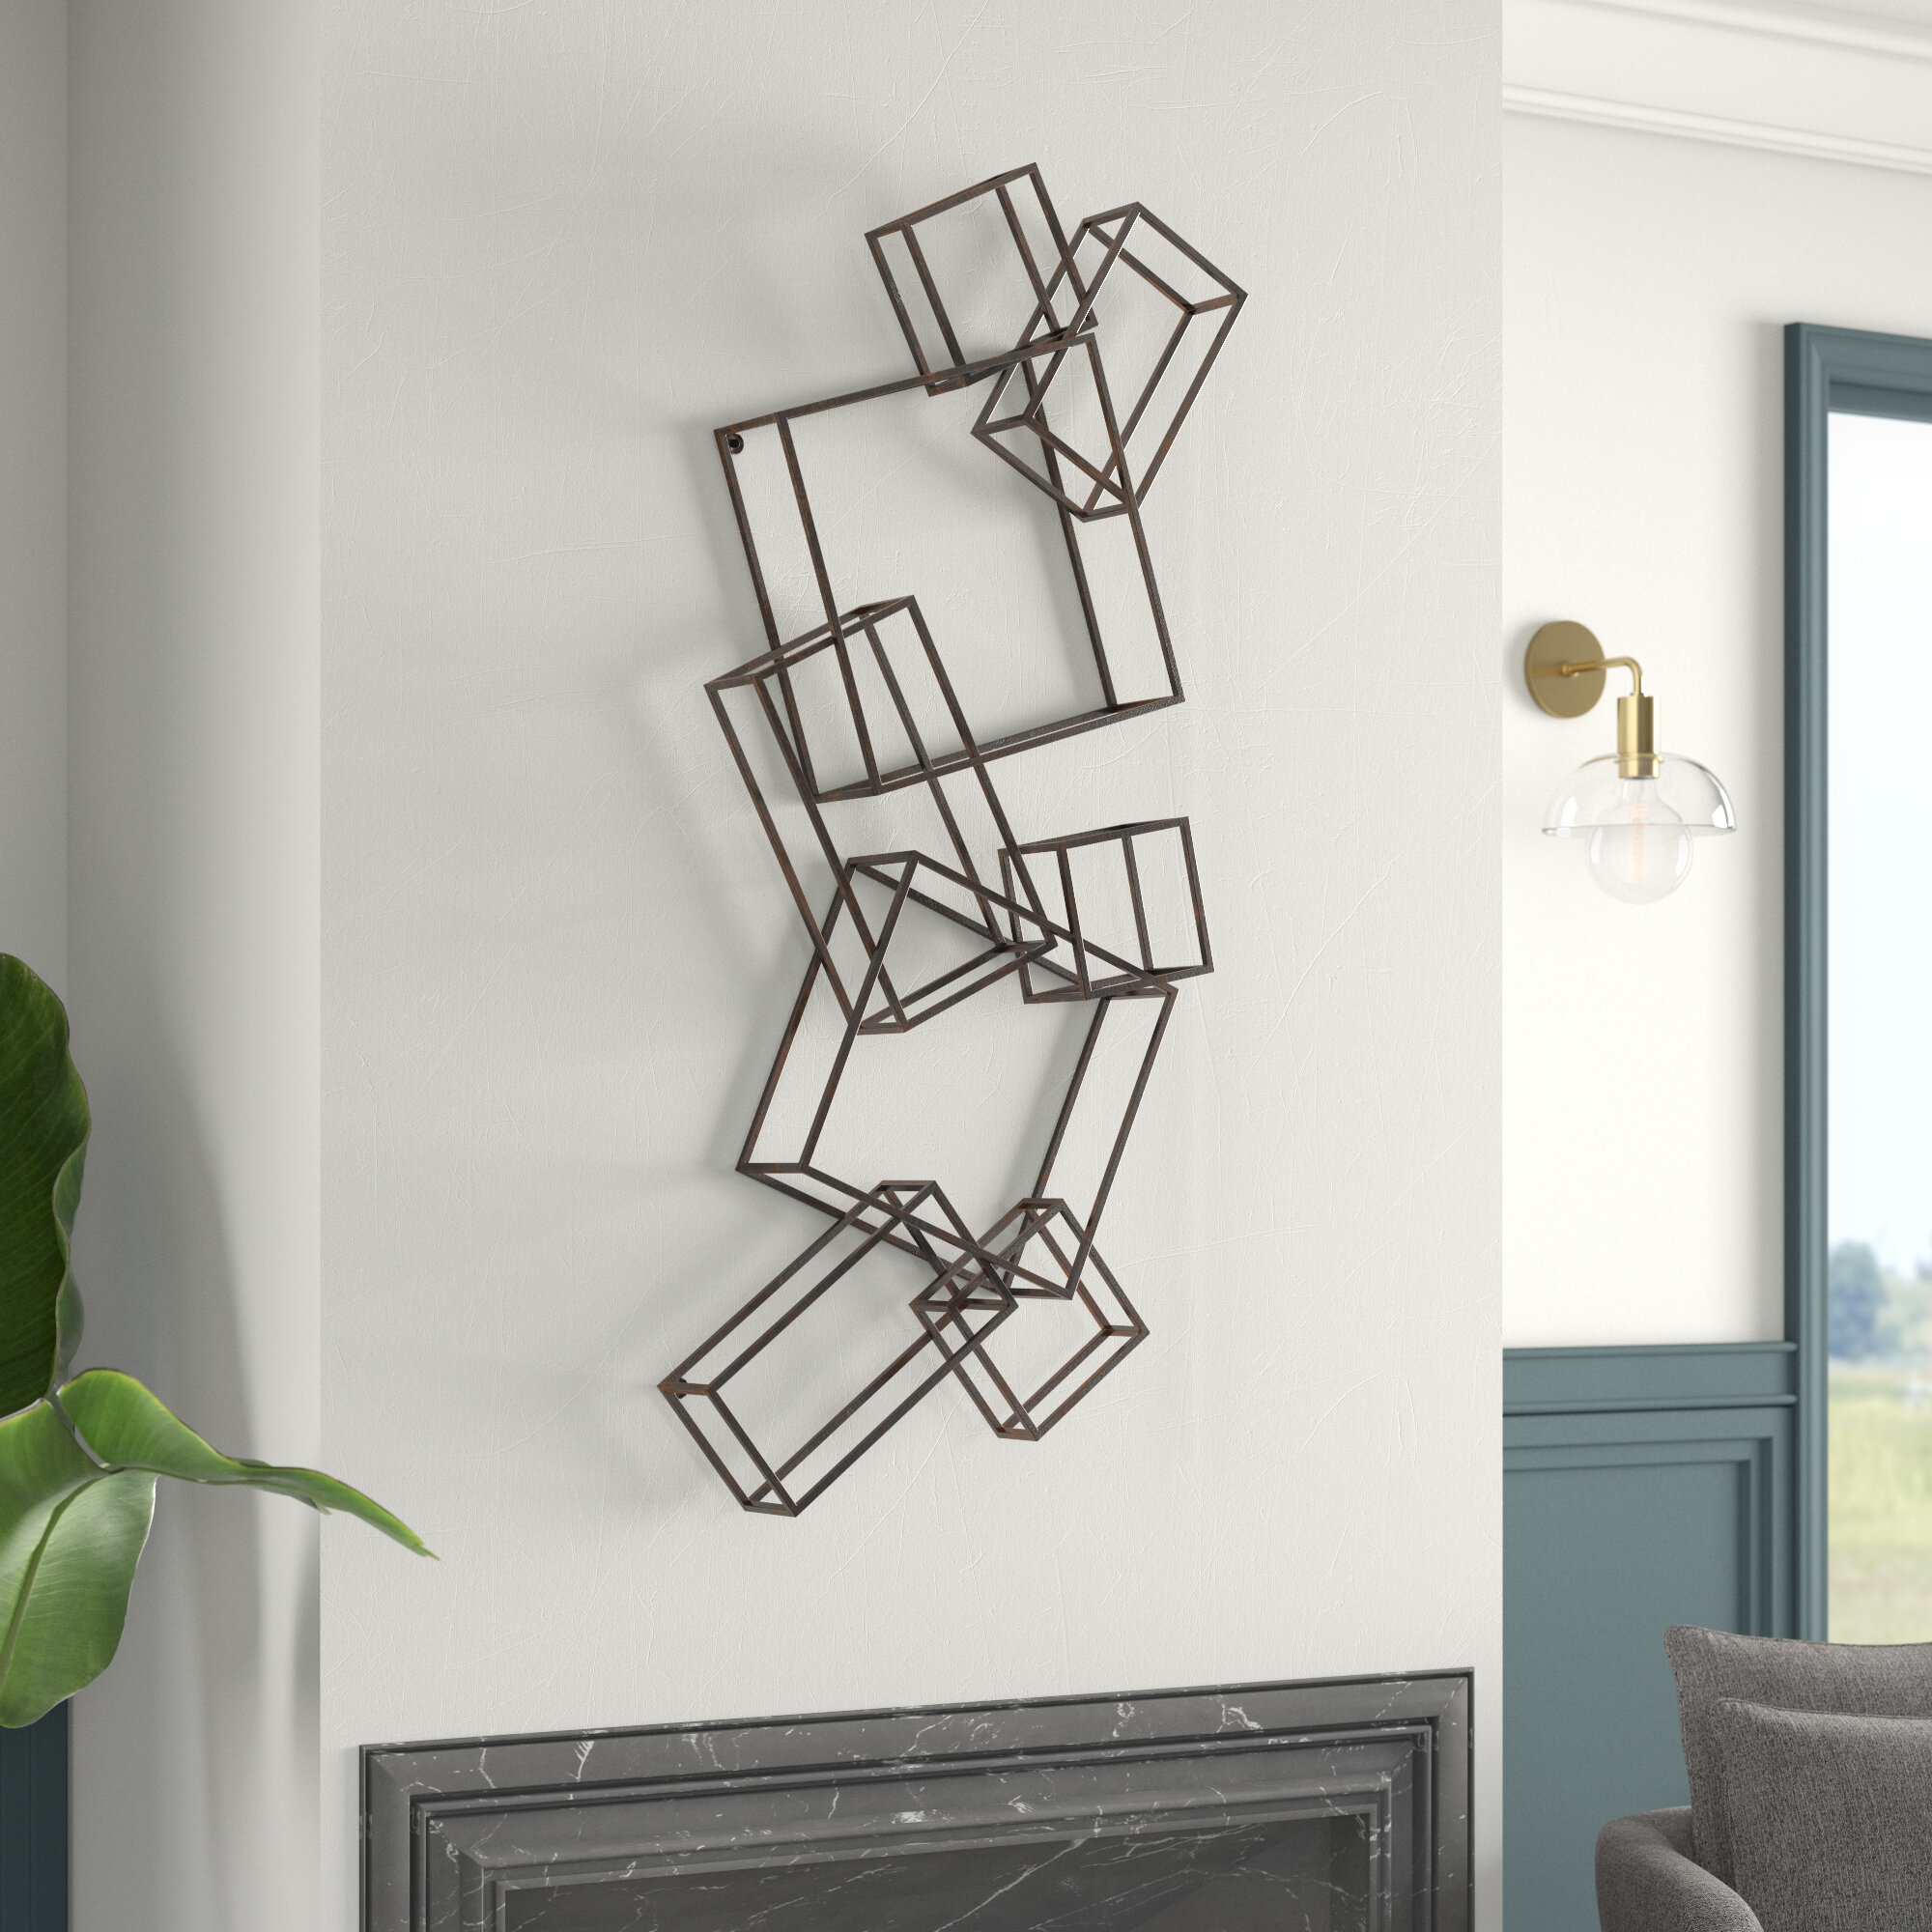 2 Piece Square Wall Décor Set With Rings Wall Decor By Wrought Studio (Photo 15 of 30)